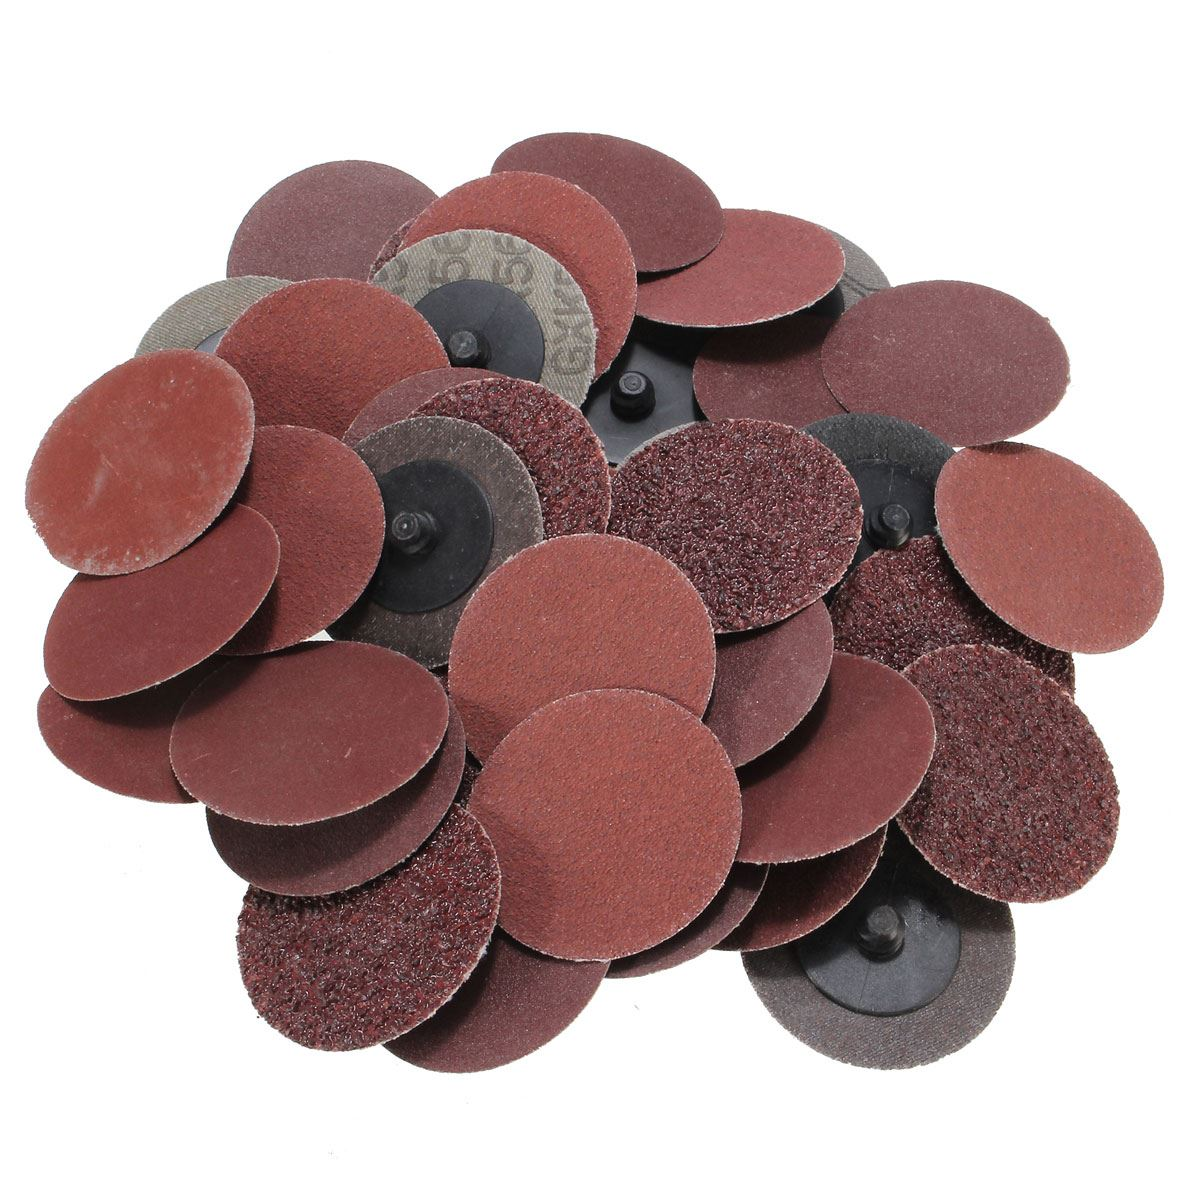 40pcs Set 2 Roll Lock Sanding Discs 36 80 180 240 Grit Mix Type R Fits For Dremel Cleaning And Polishing Best Price